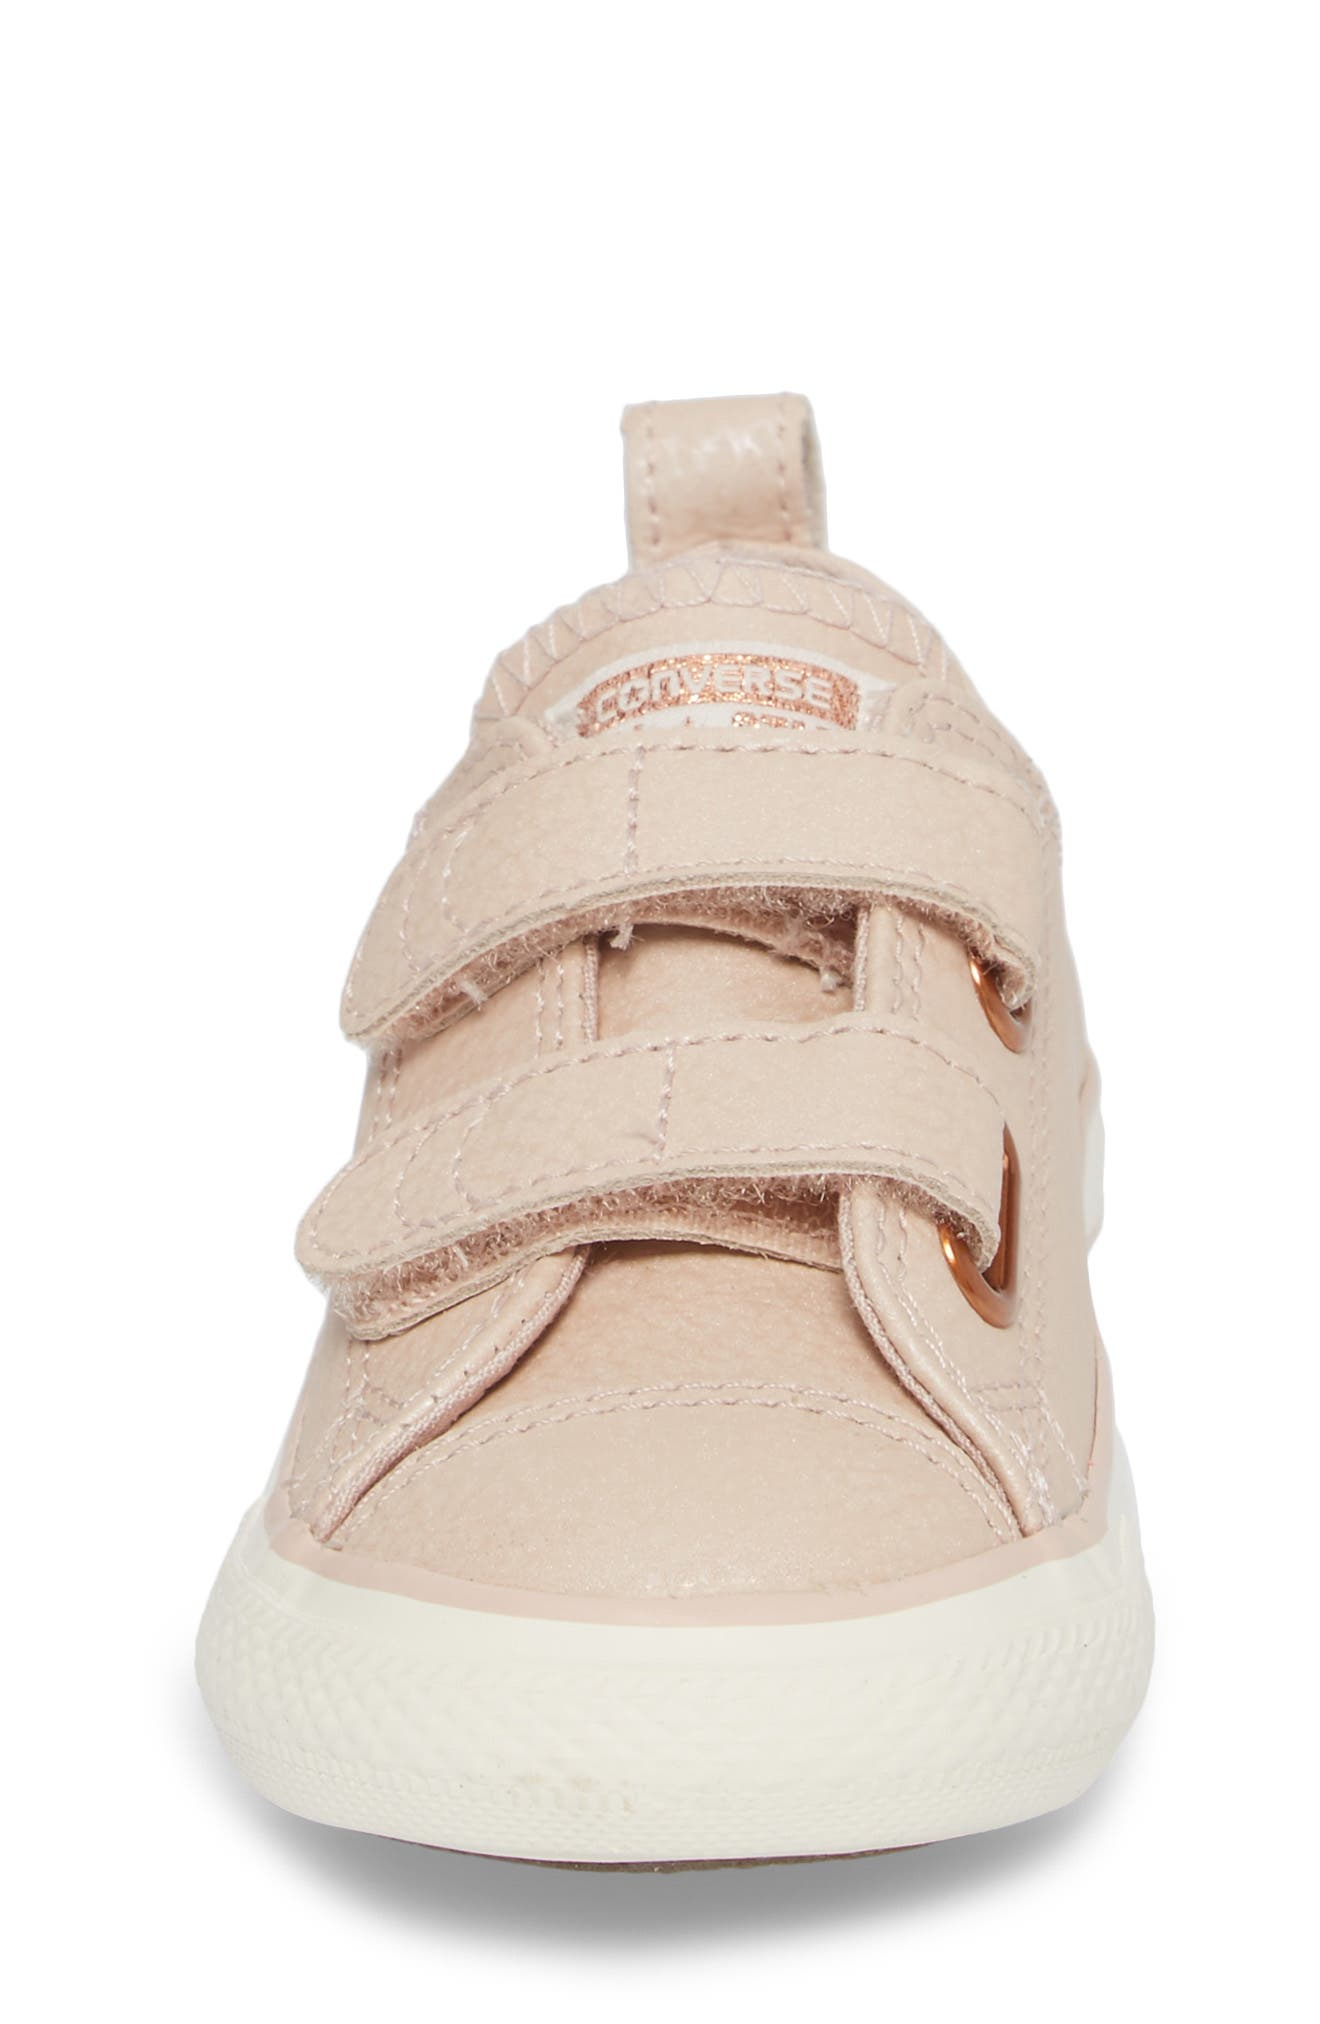 All Star<sup>®</sup> Fashion 2V Low Top Sneaker,                             Alternate thumbnail 4, color,                             Particle Beige